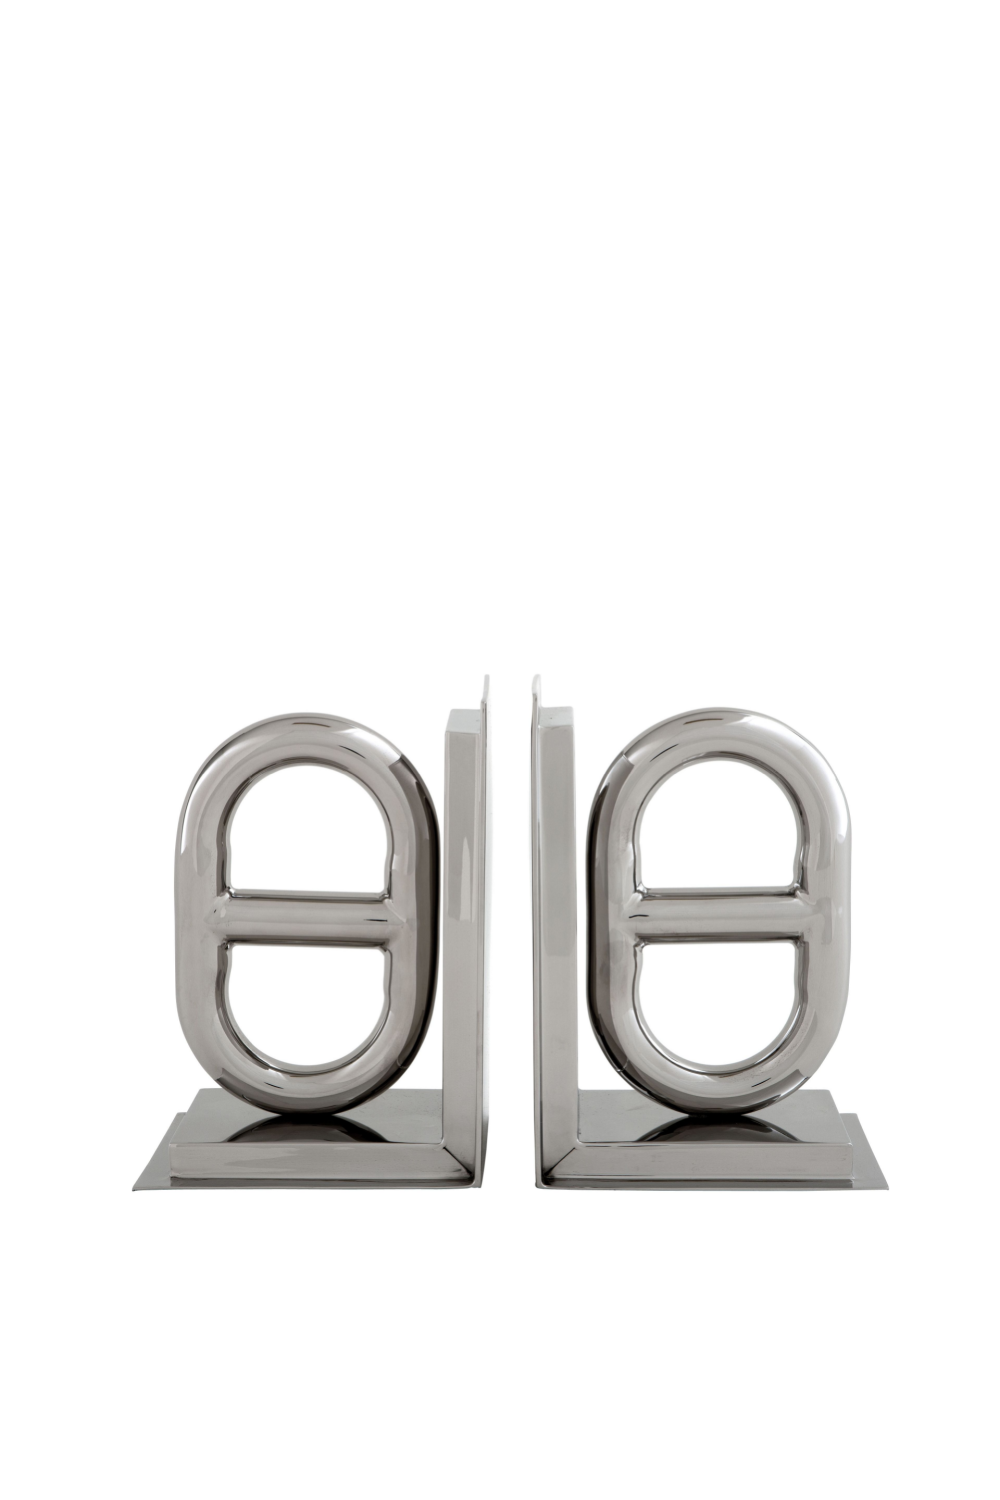 Nautical Bookends set of 2 | Eichholtz Nevis | #1 Eichholtz Online Retailer